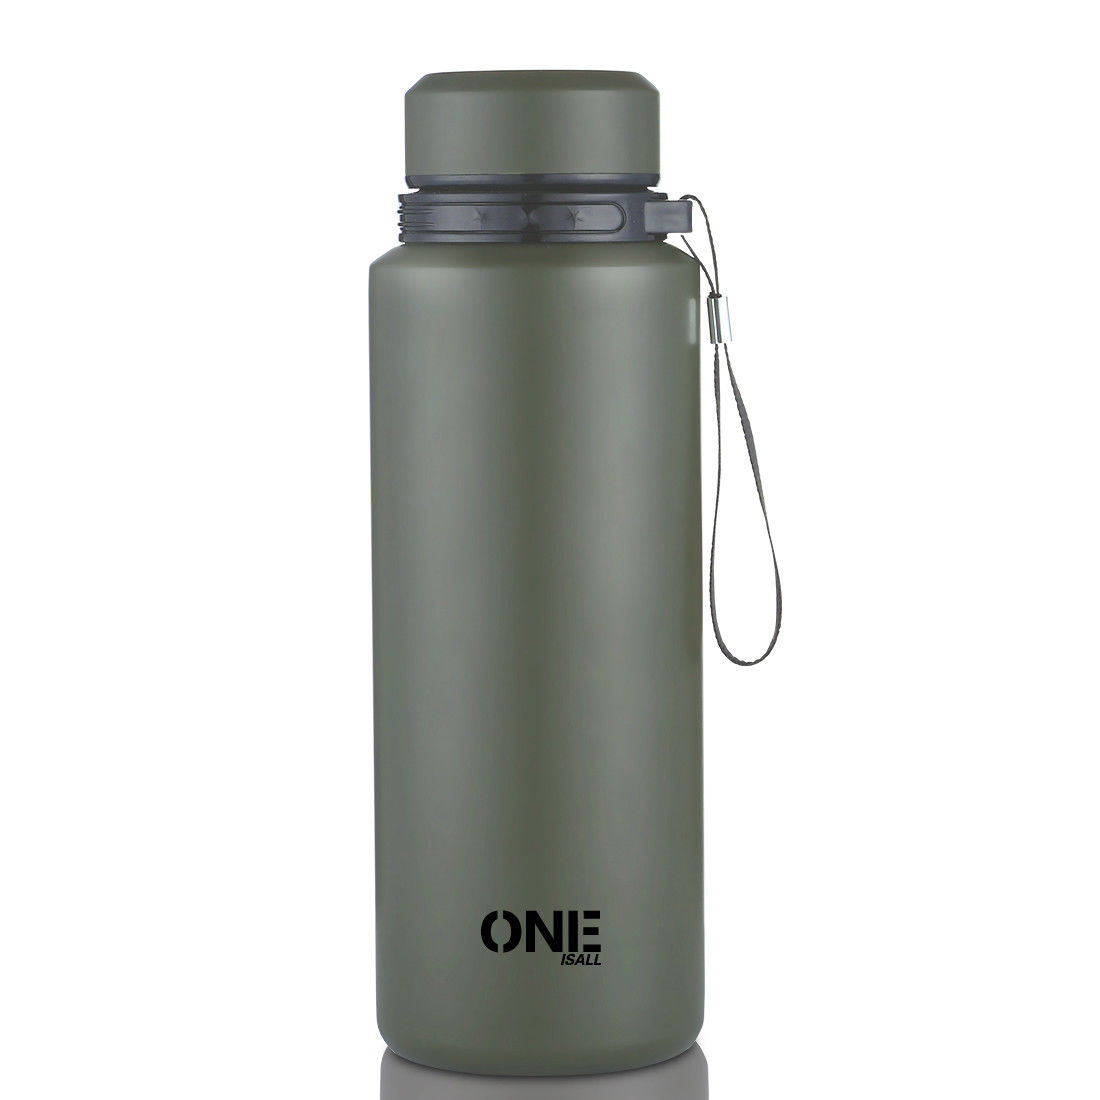 b66f0f6b22 33.8 Oz Stainless Steel Vacuum Thermos Flask Water Bottle Thermal Cup  Coffee Mugs Portable Insulated Travel Flask Bottle